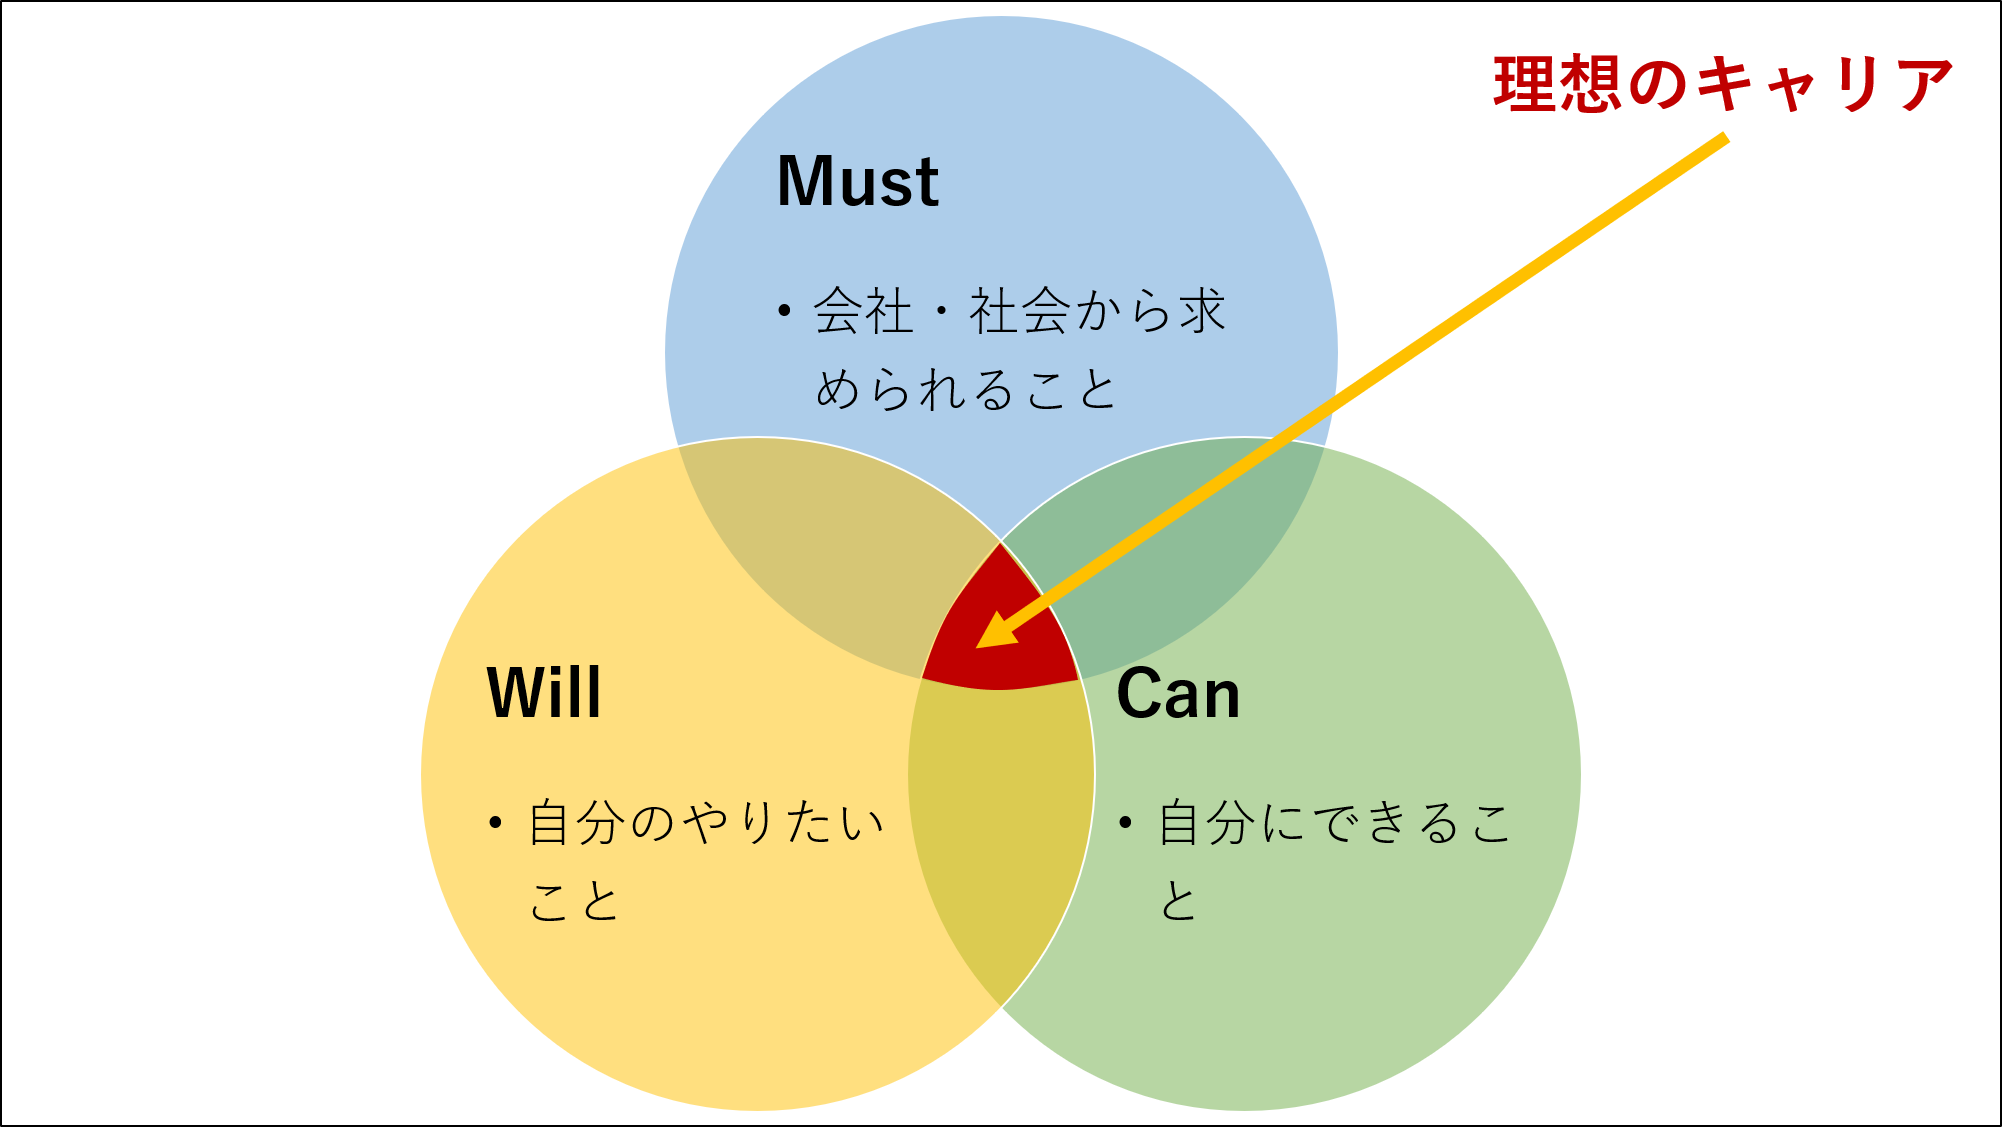 Will, Can, Mustのベン図